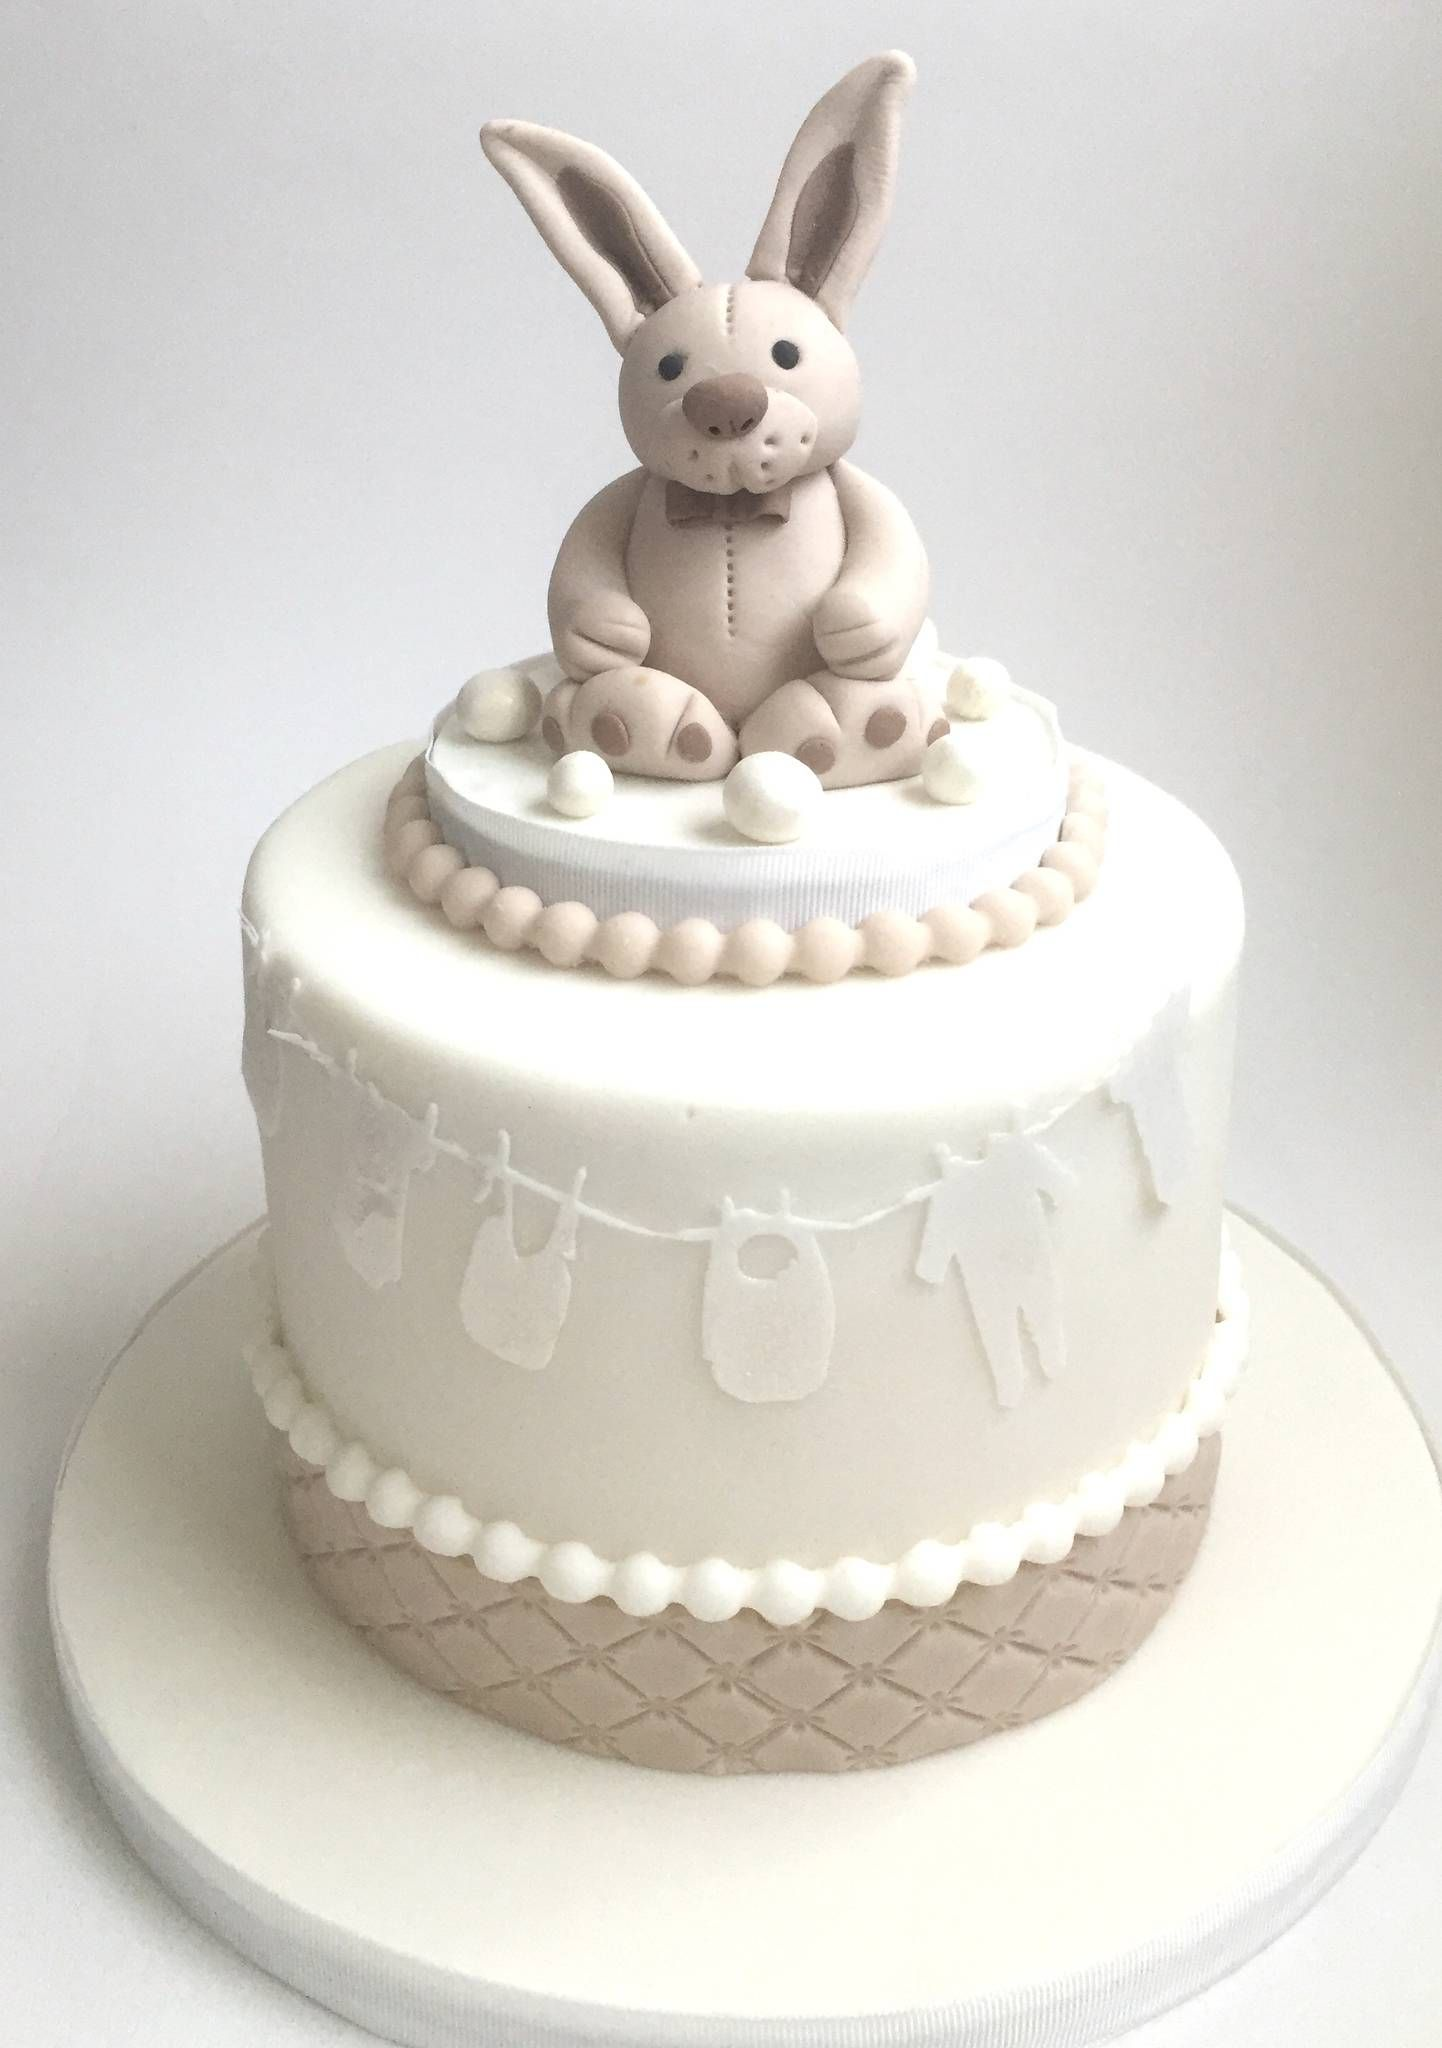 70 Ba Shower Cakes And Cupcakes Ideas pertaining to sizing